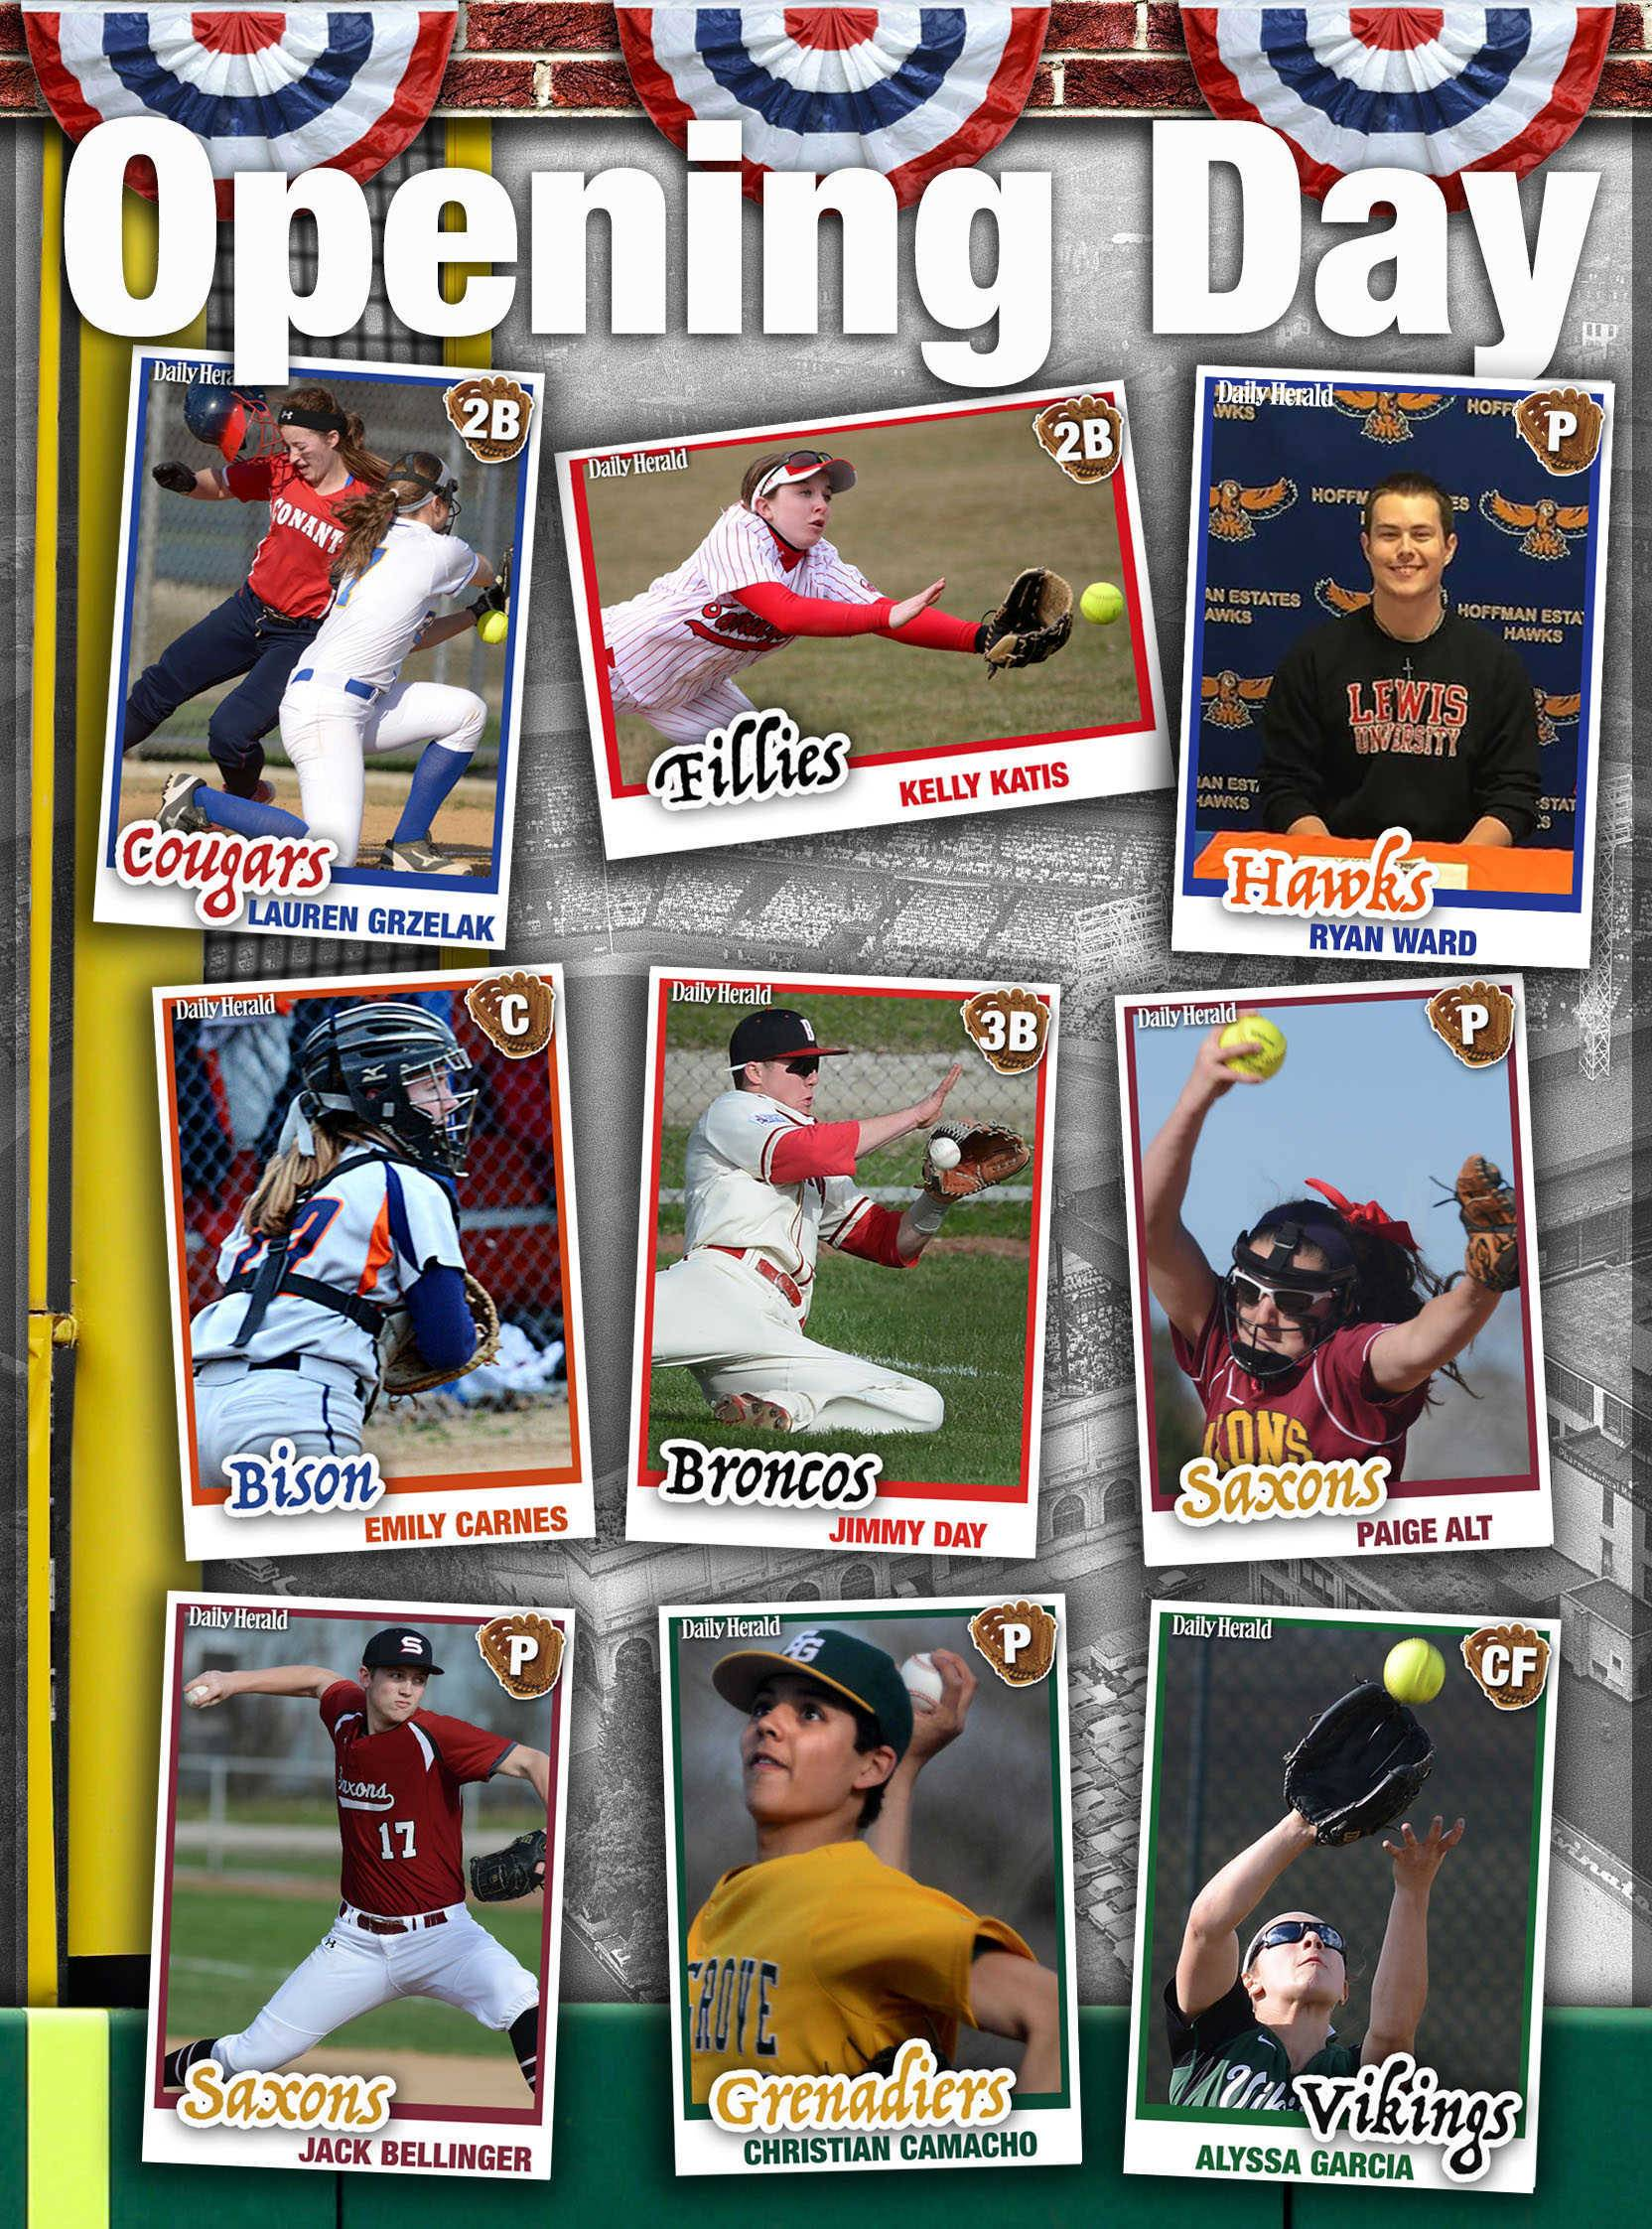 Images: Daily Herald virtual baseball and softball trading cards